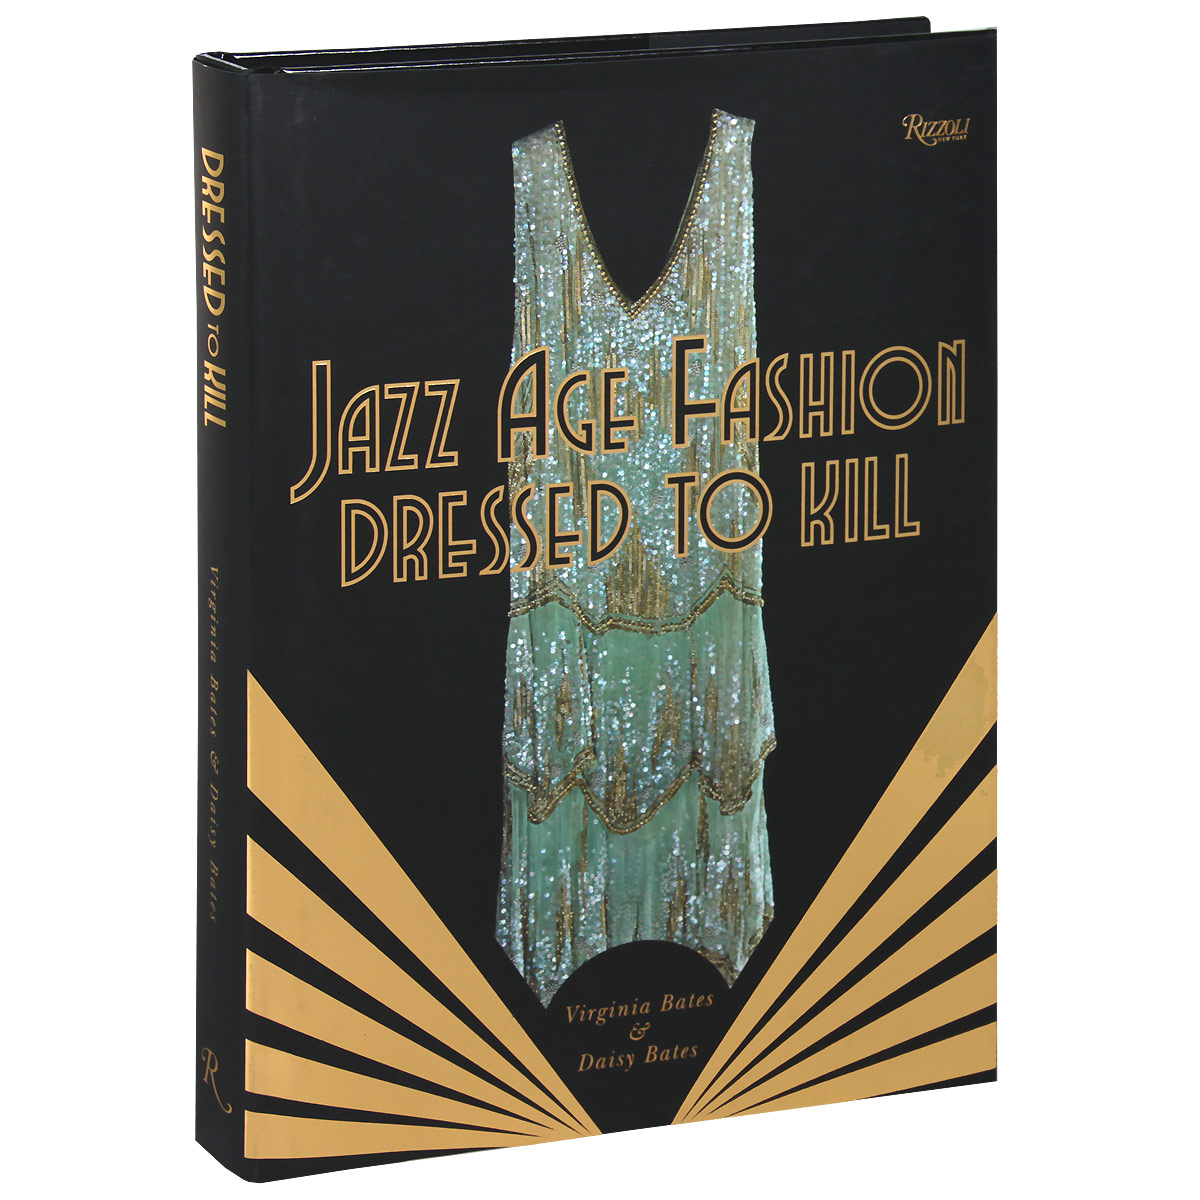 Dressed to Kill: Jazz Age Fashion opulent 04 02